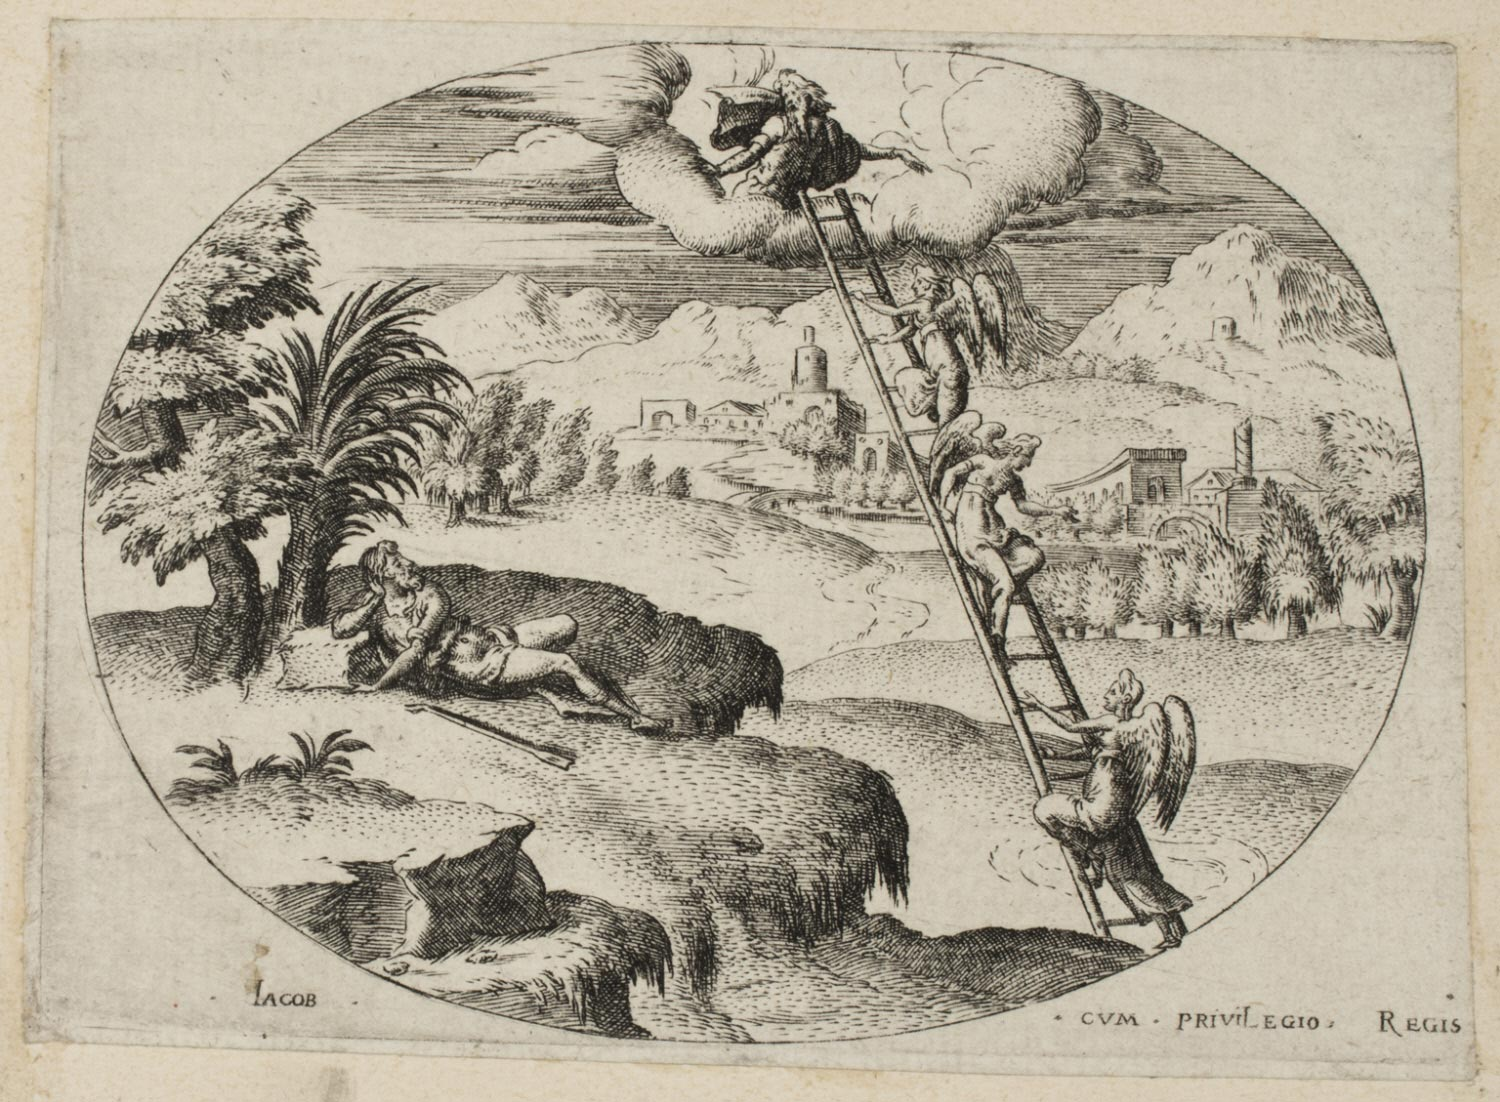 Jacob's Dream (Jacob's Ladder)  , 1561, by Étienne Delaune, French from the  Philadelphia Museum of Art